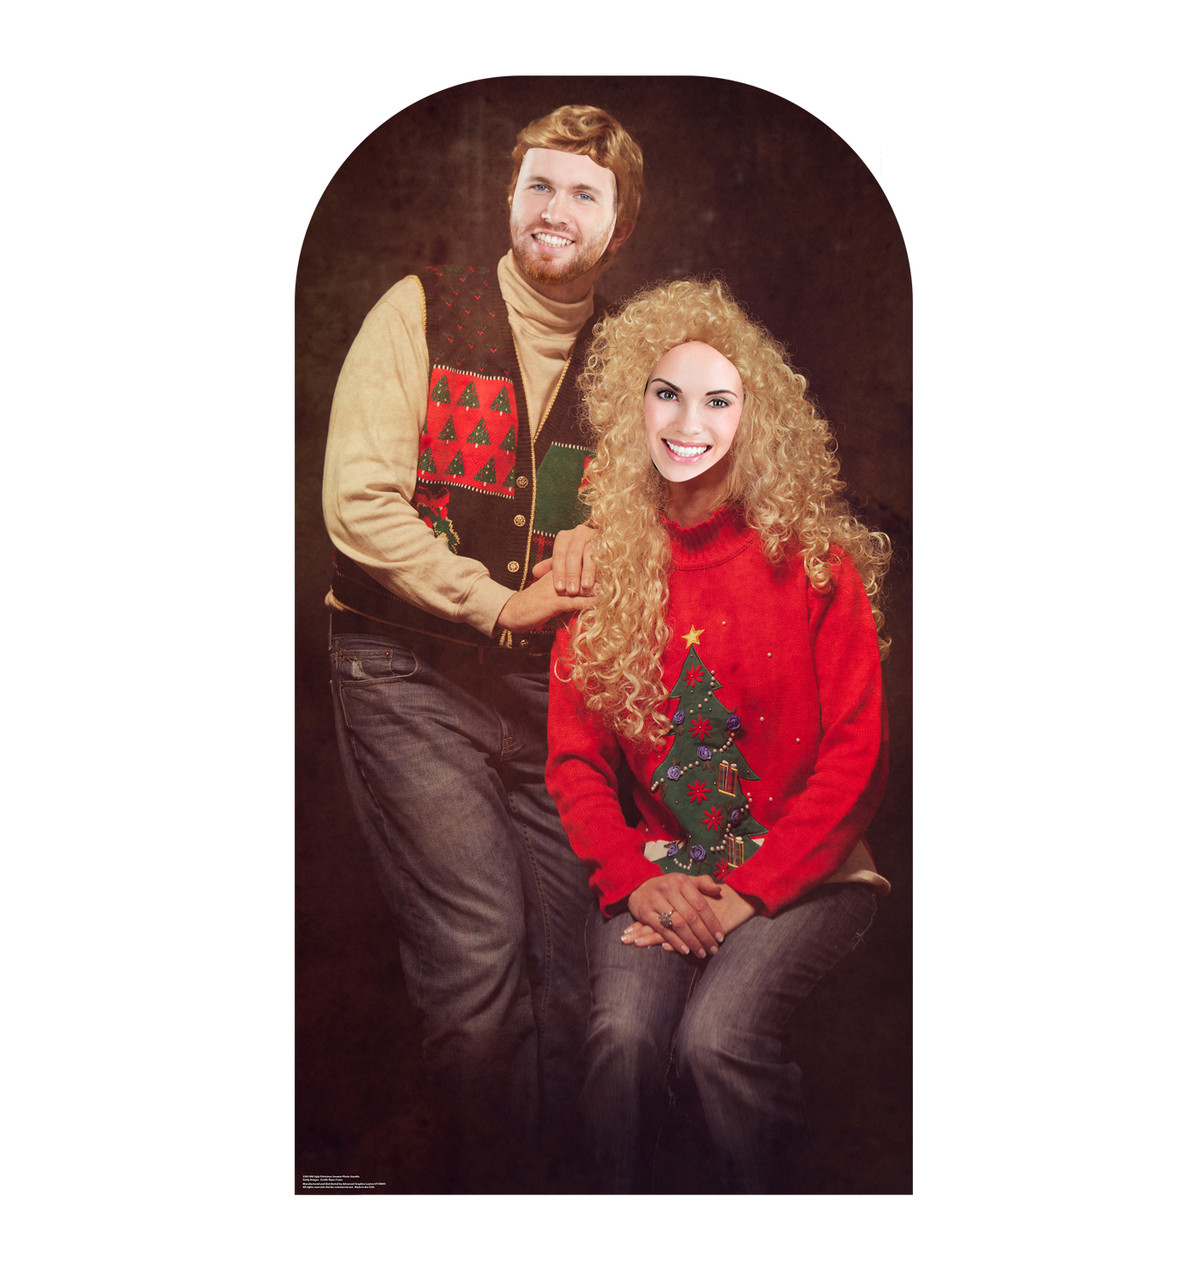 Ugly Christmas Sweater Portrait Stand-in Front View